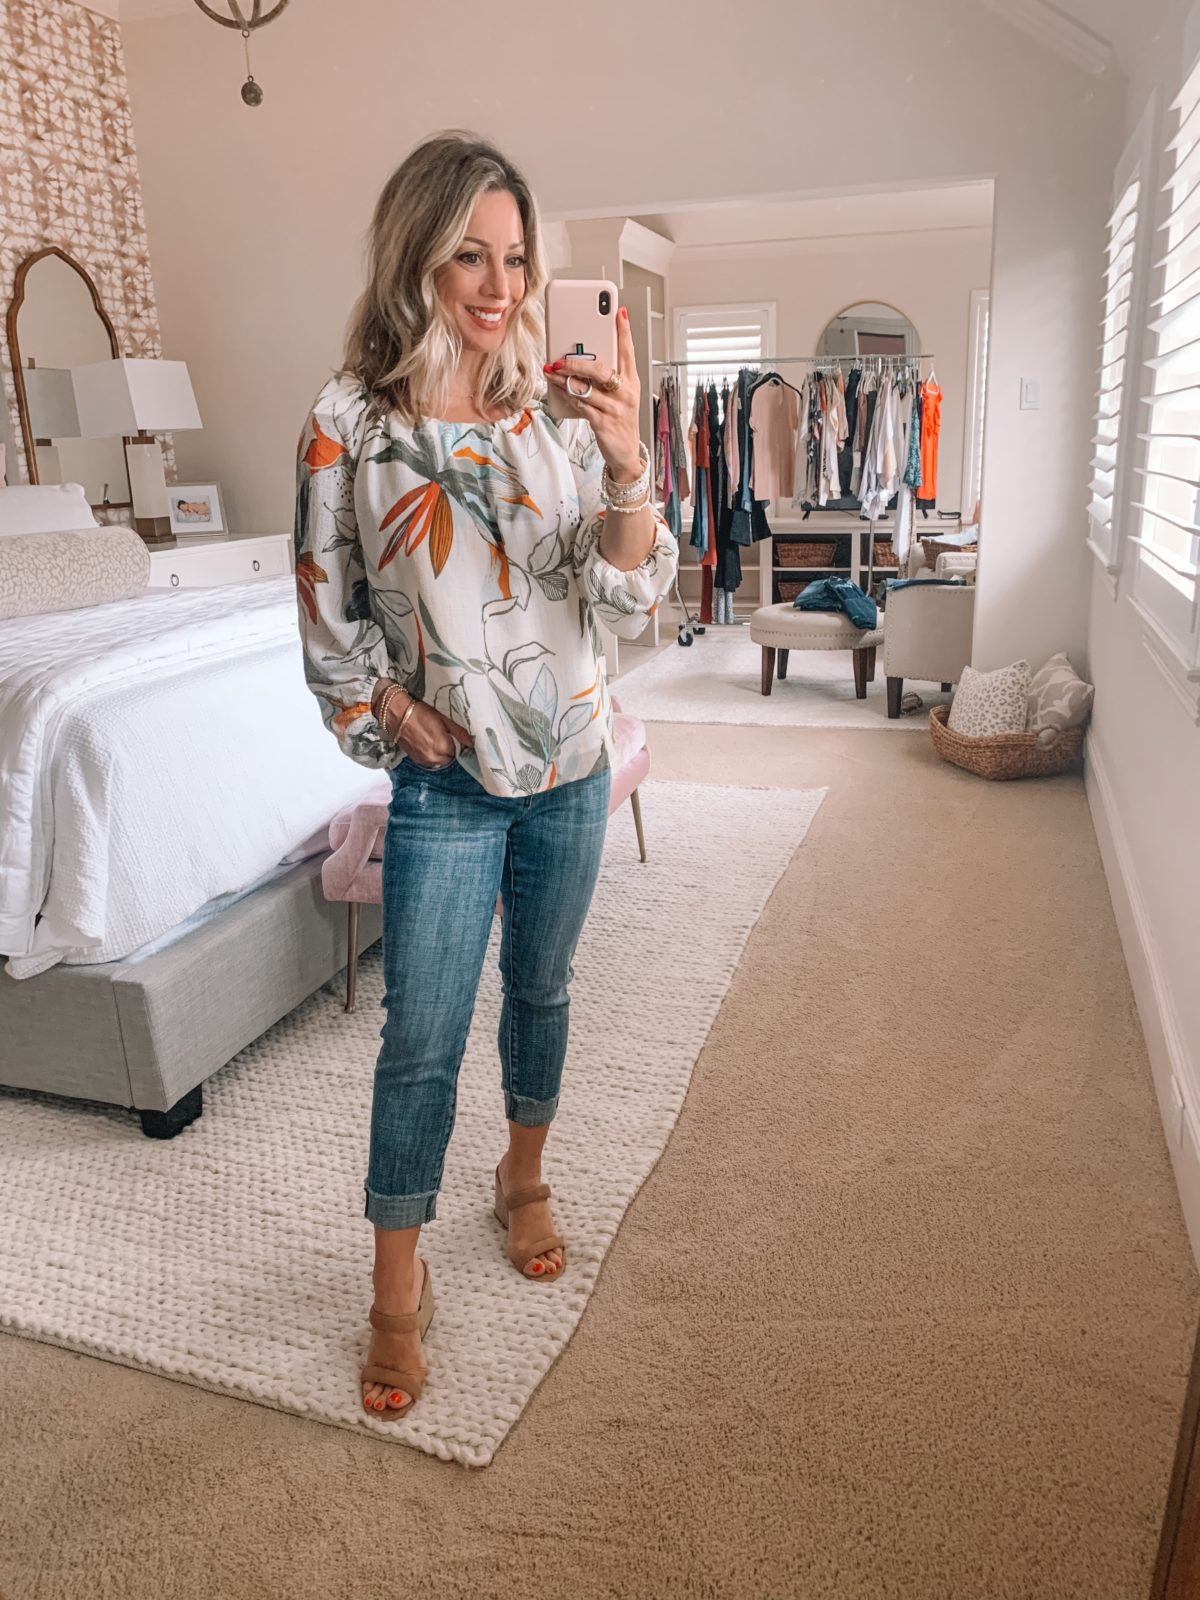 Dressing Room Finds Nordstrom and Target, Floral Boho Top, Jeans, Sandals